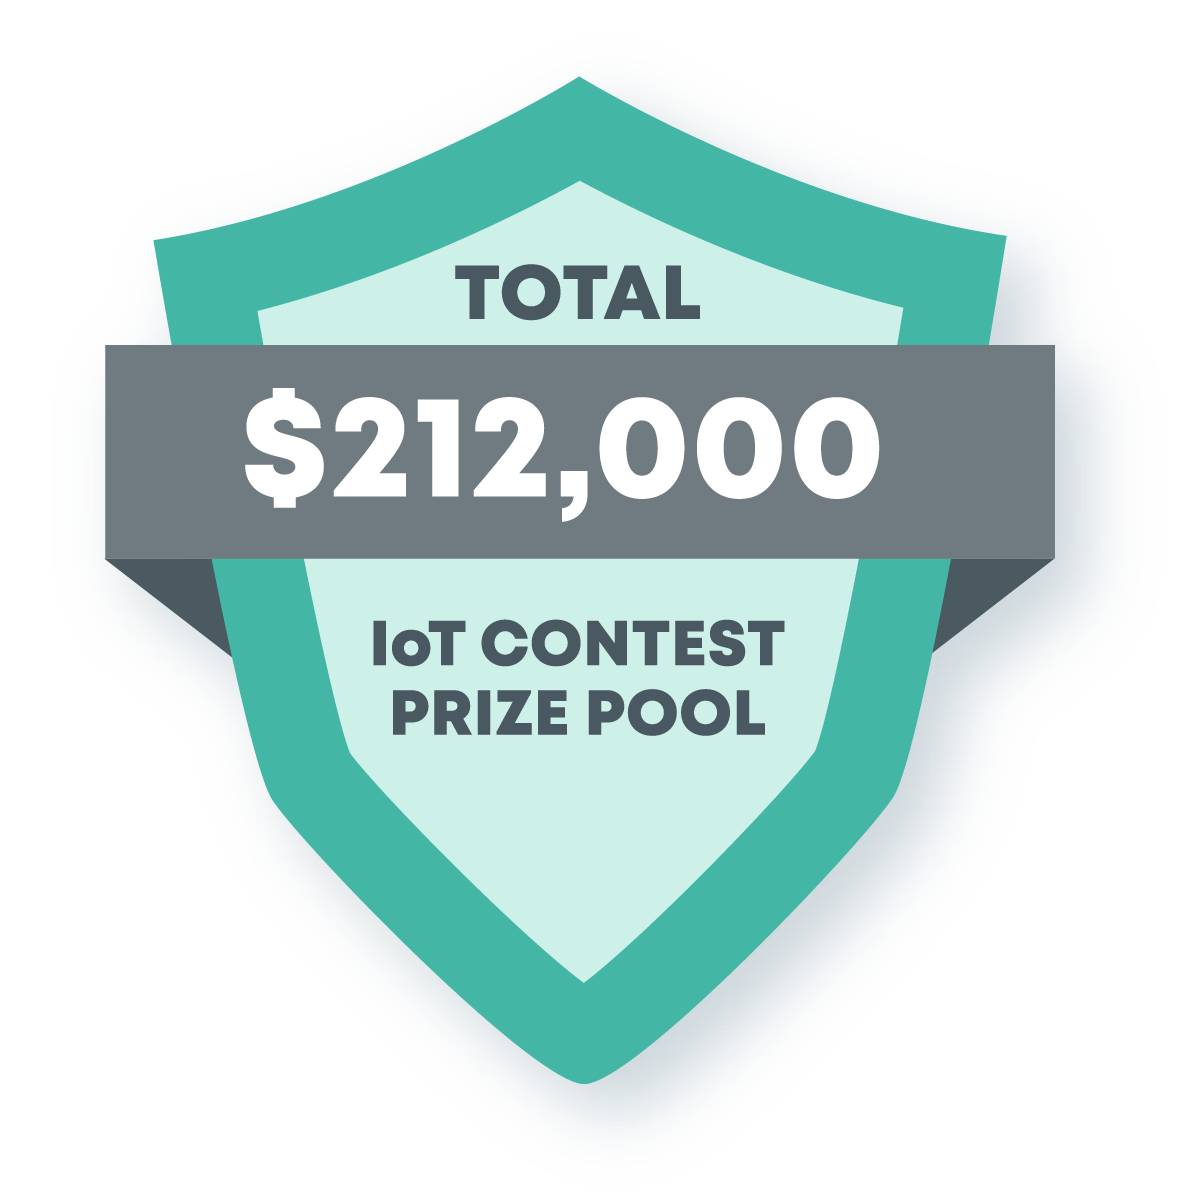 This image contains a shield announcing a total of $212,000 in the IoT contest prize pool.